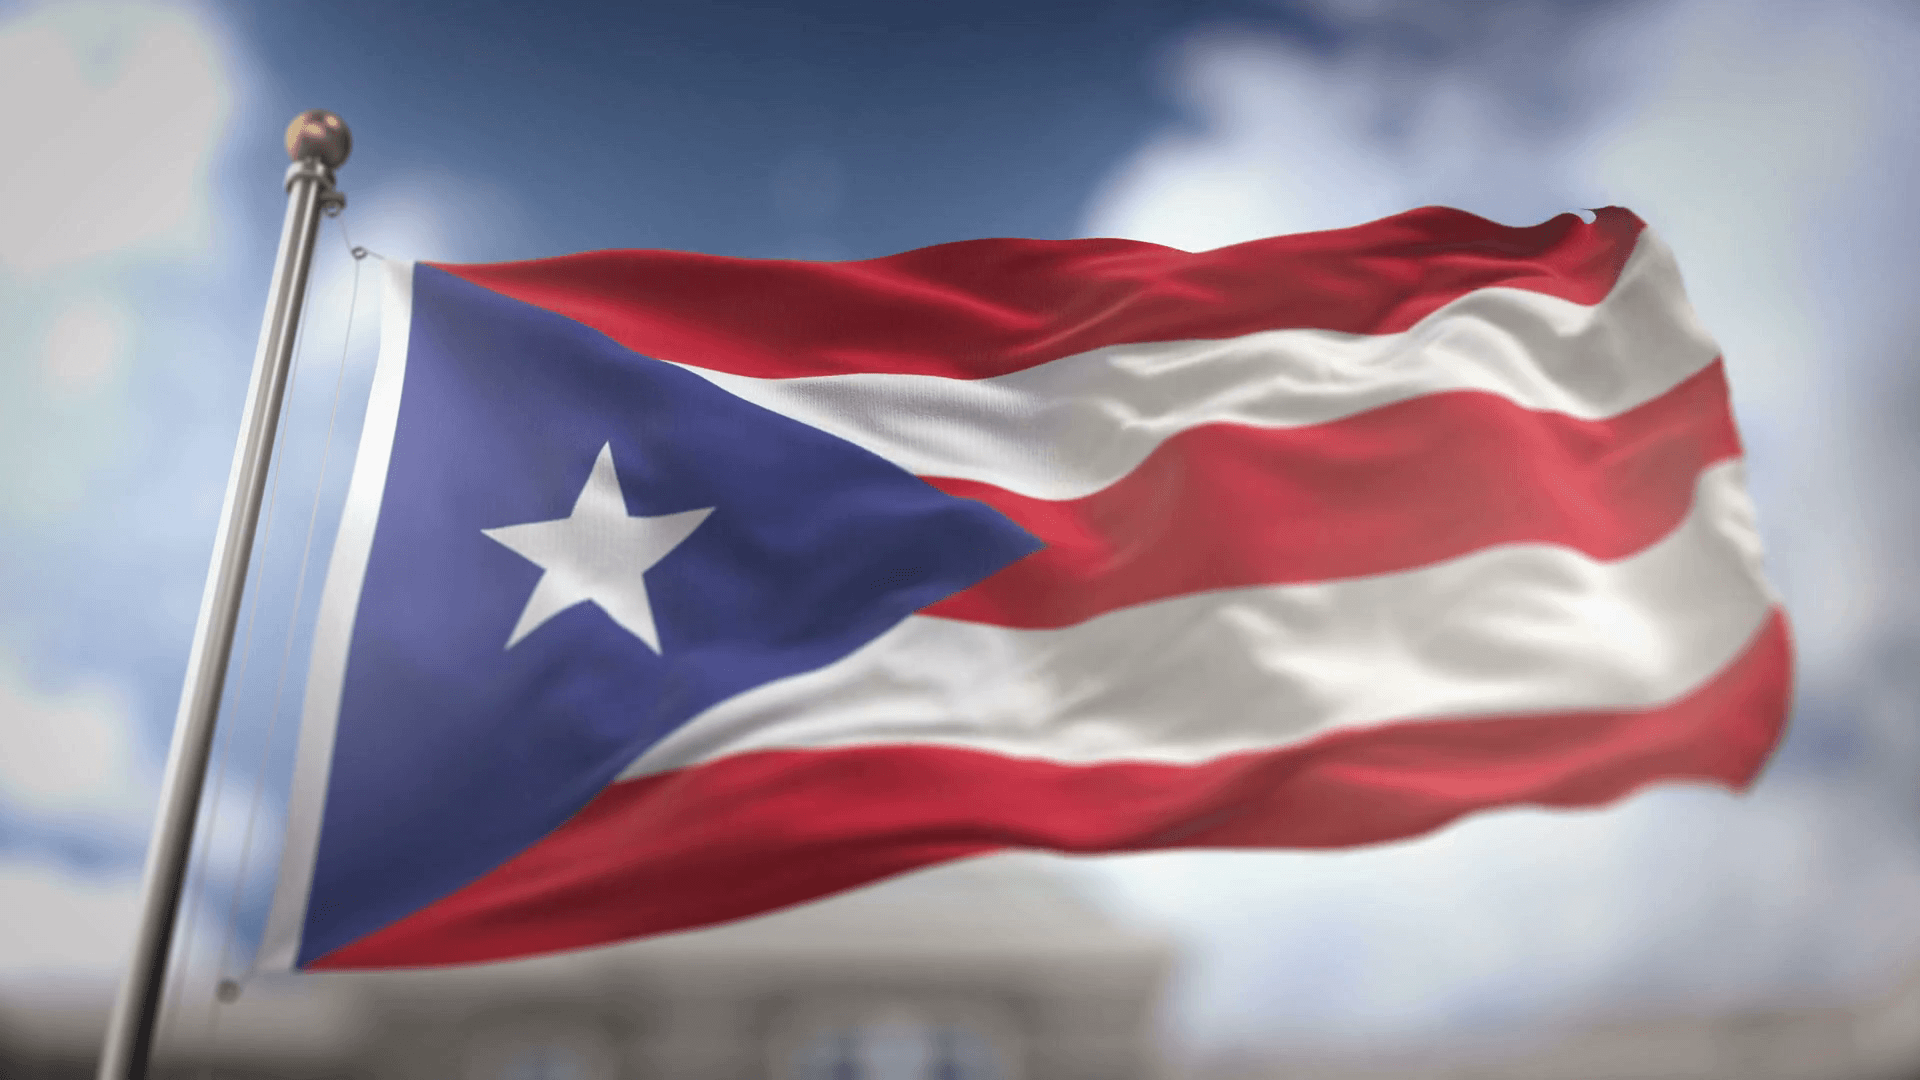 Puerto Rico Flag Waving Slow Motion 3D Rendering Blue Sky Backgrounds